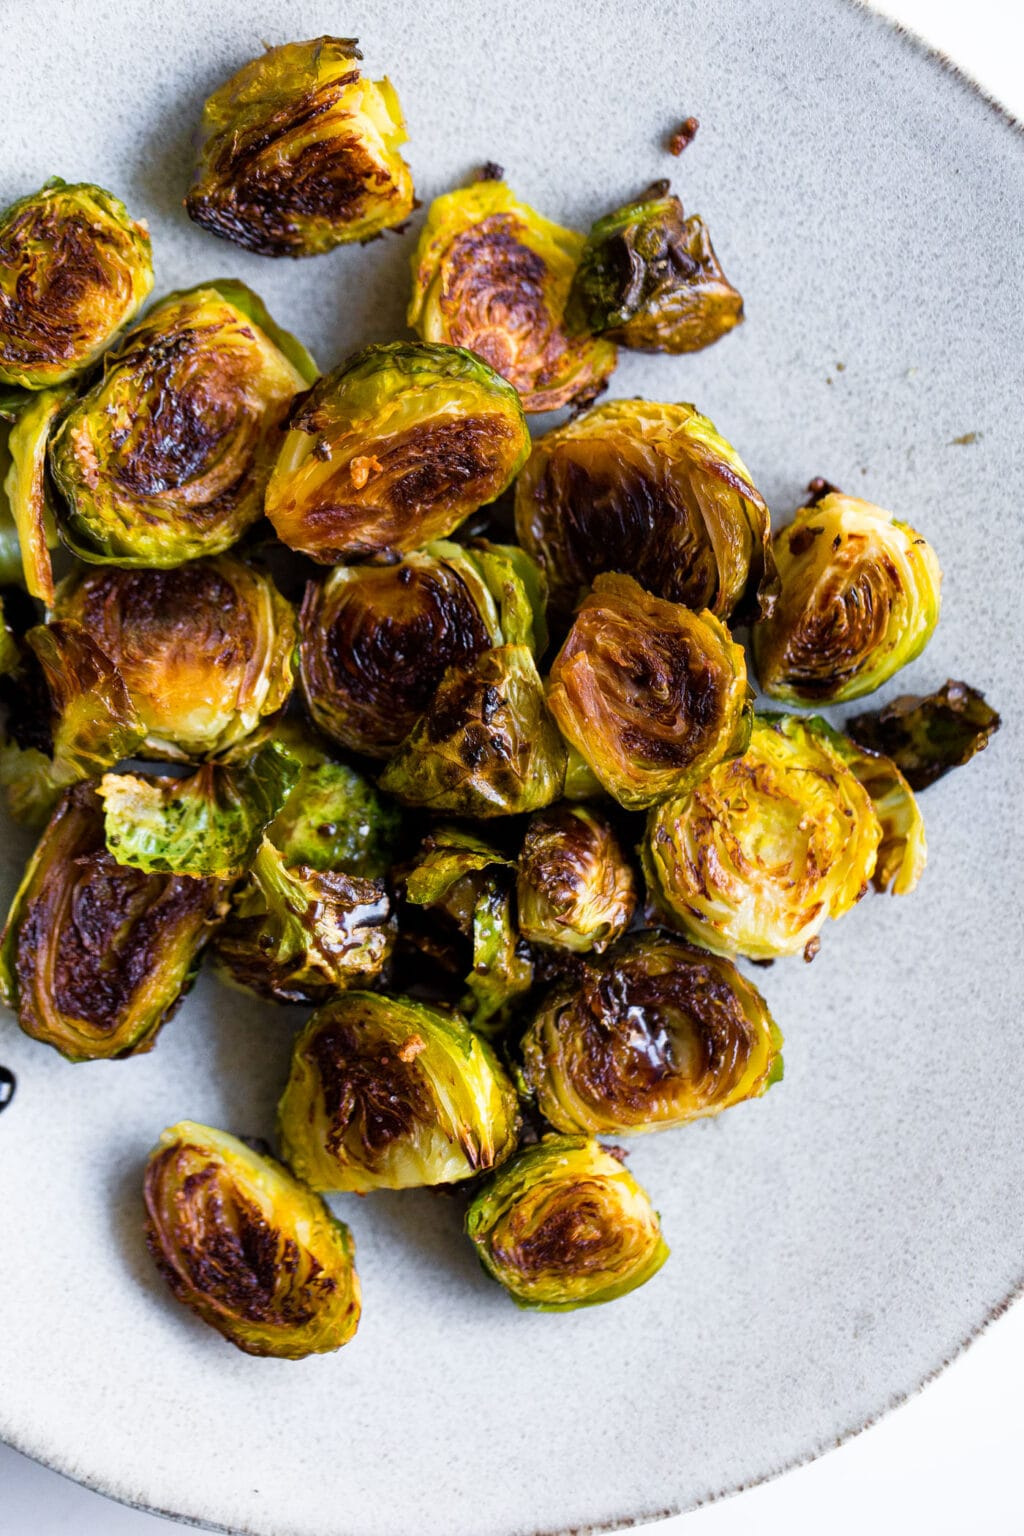 Plate of roasted balsamic brussels sprouts.